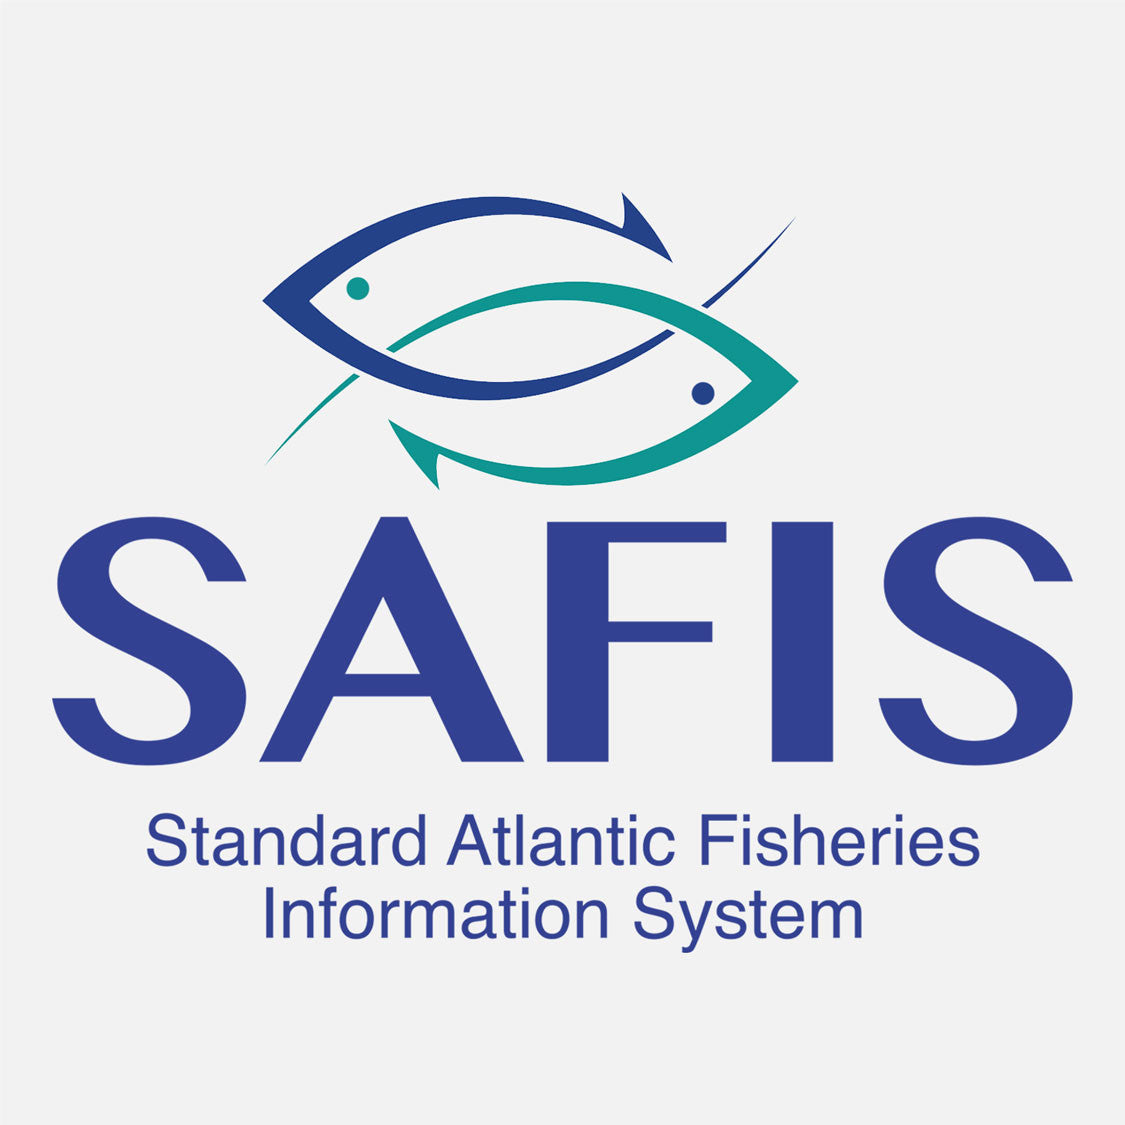 Standard Atlantic Fisheries Information System (SAFIS) allows fishermen to meet the increasing need for real-time commercial landings data. The logo is a graphical depiction of fish hooks.